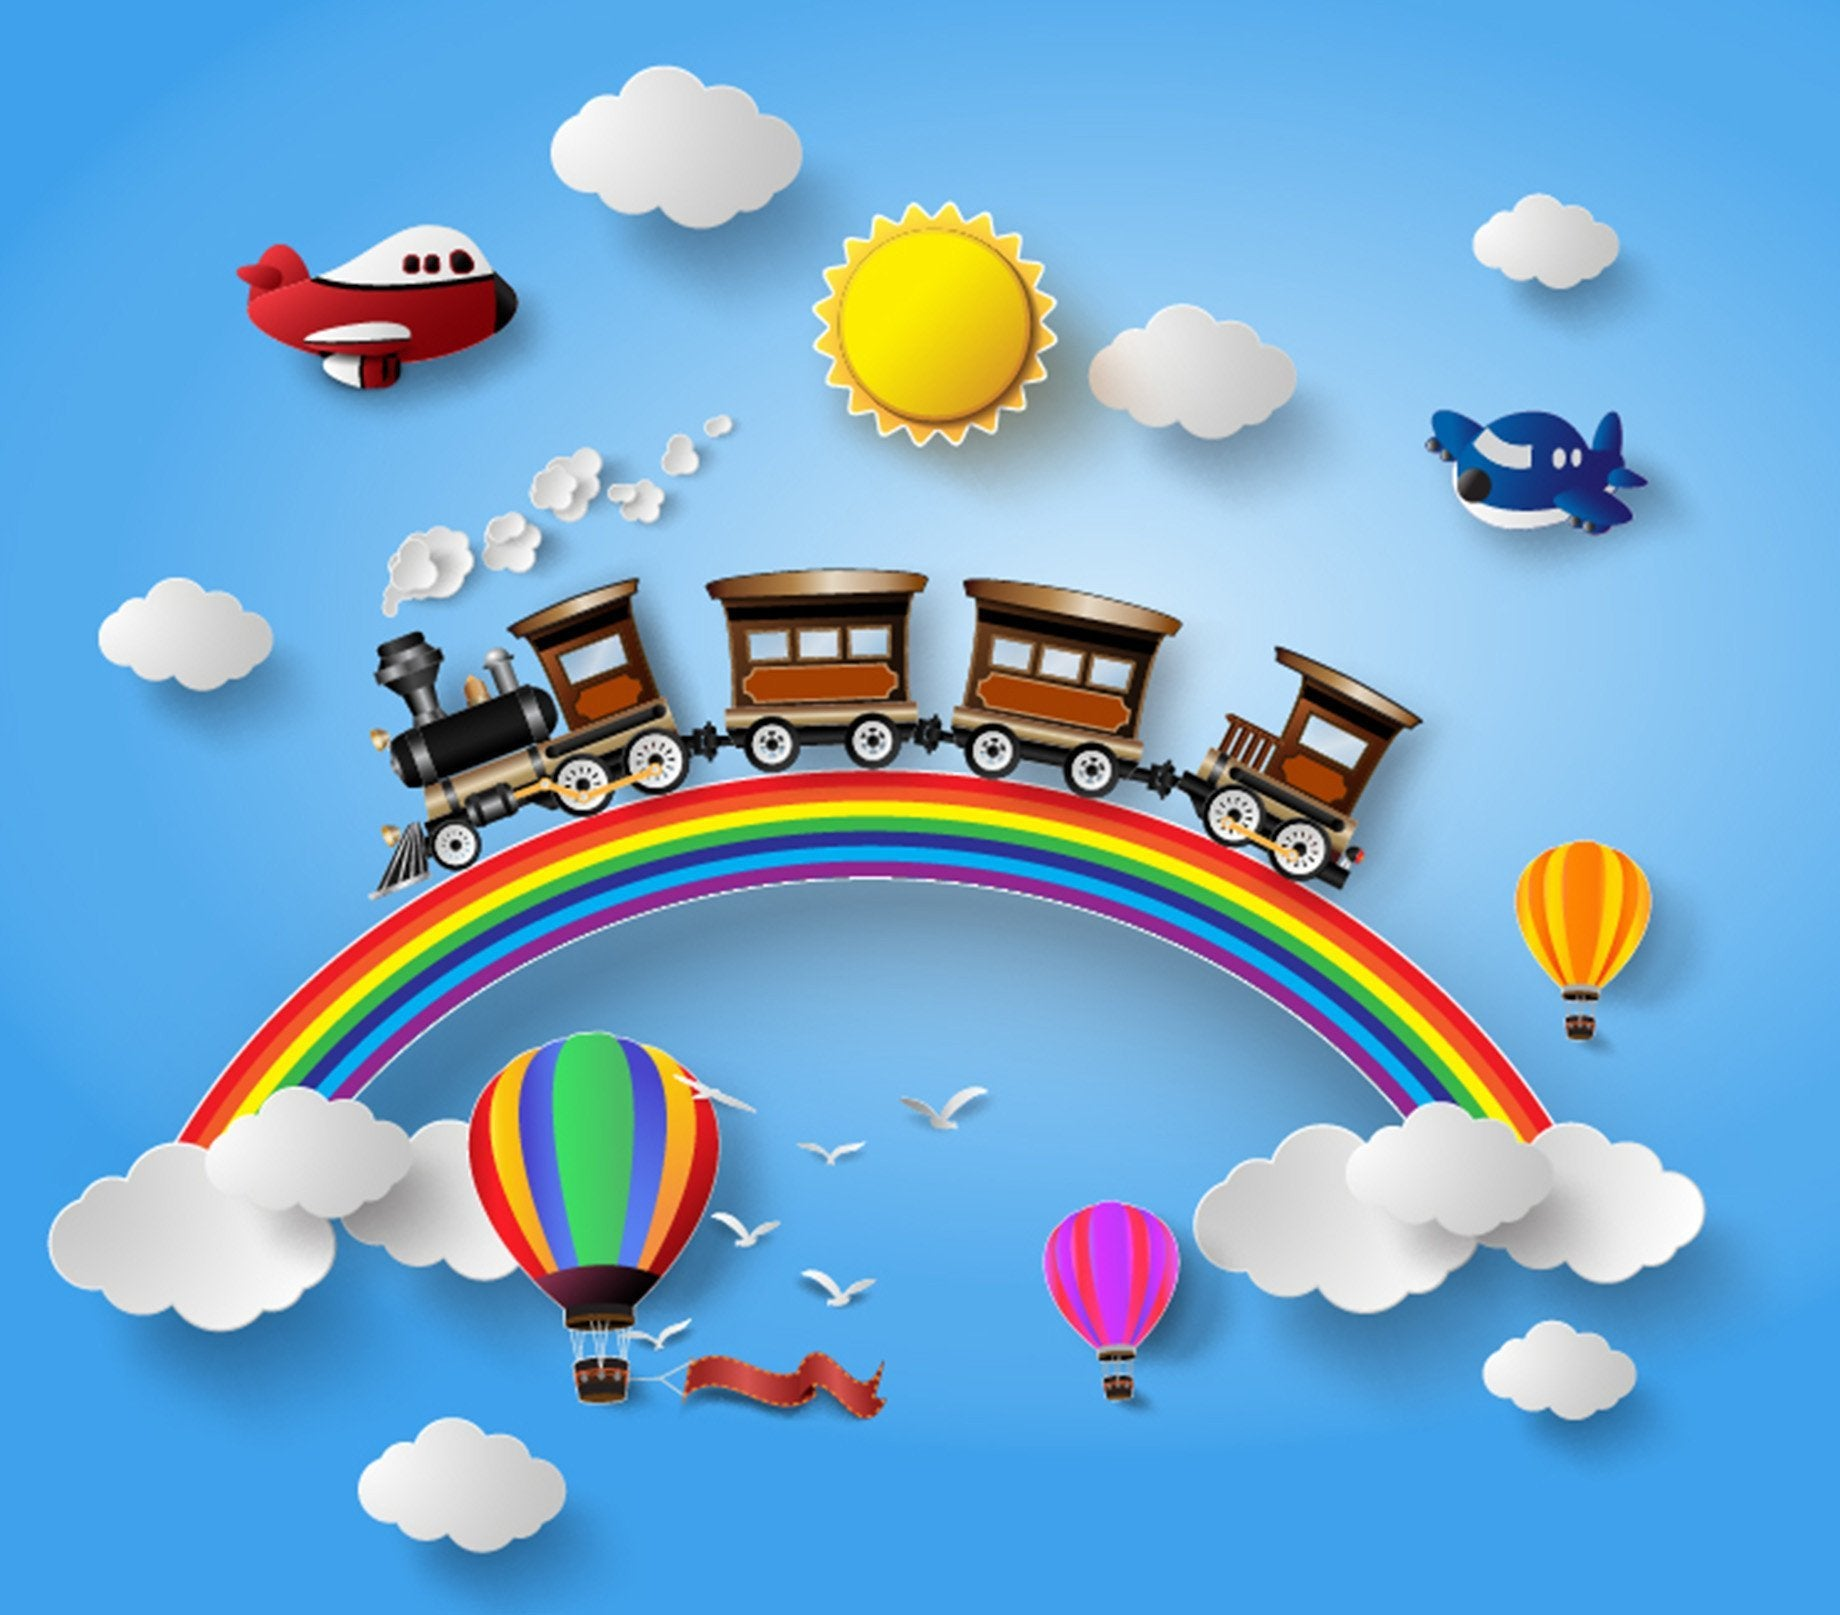 Rainbow Train Wallpaper AJ Wallpaper